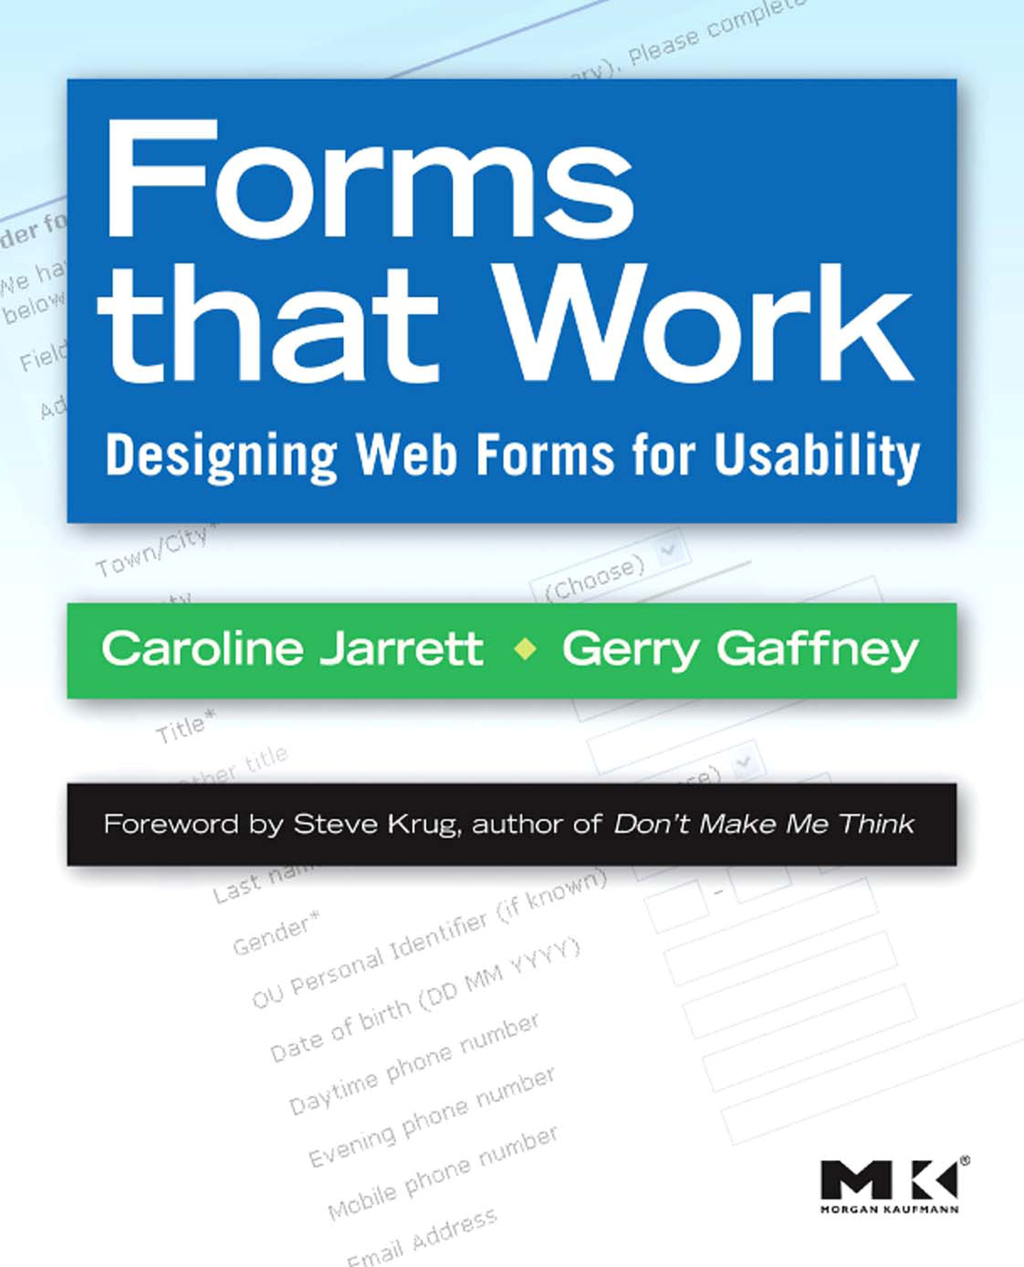 Forms that Work Designing Web Forms for Usability